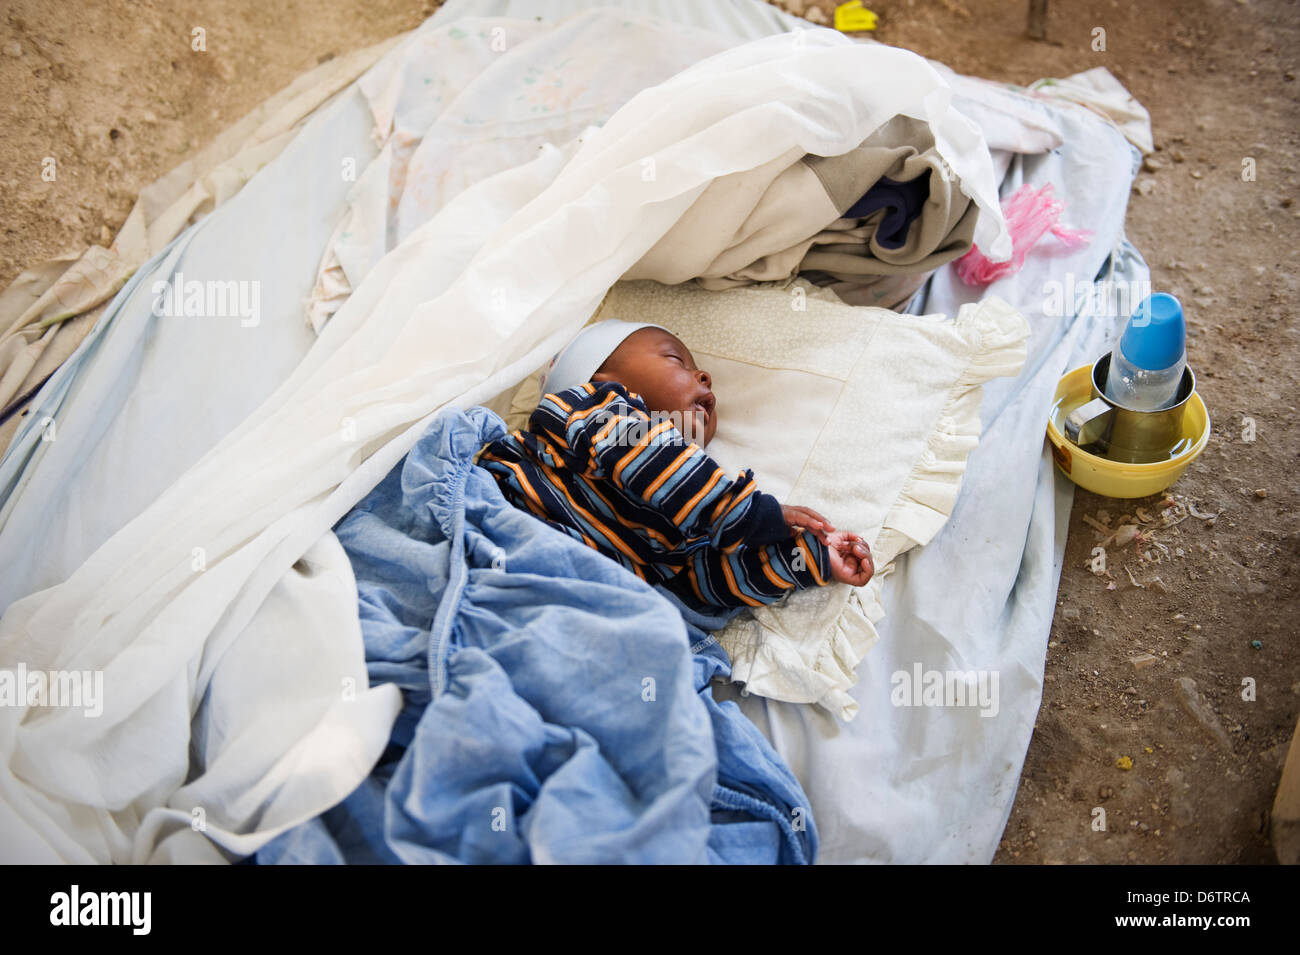 living conditions after the January 2010 earthquake, Port au Prince, Haiti, Caribbean - Stock Image